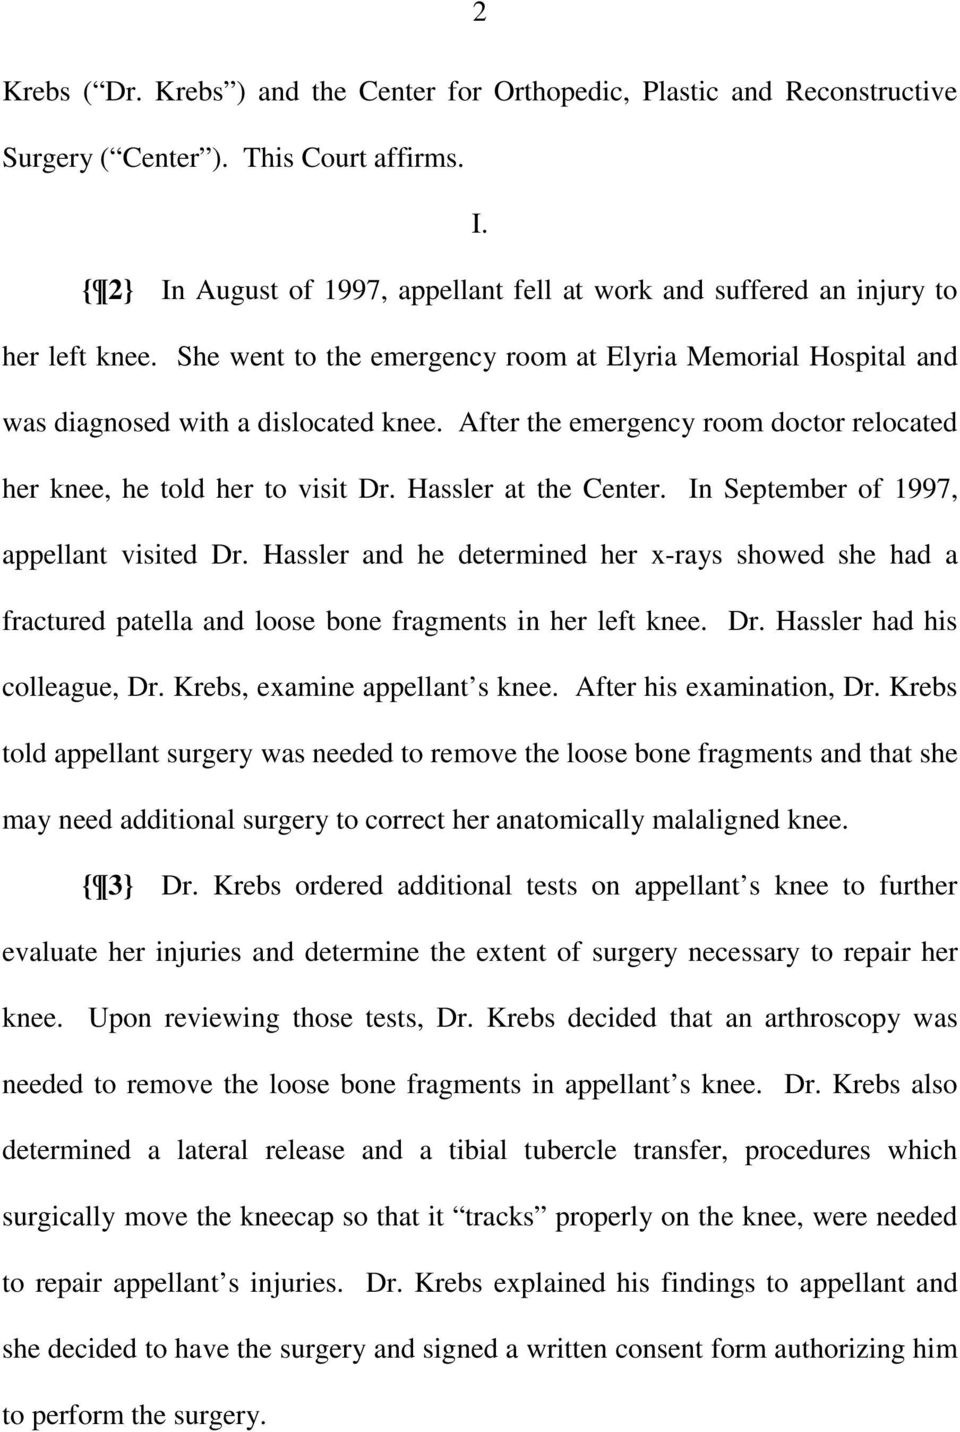 After the emergency room doctor relocated her knee, he told her to visit Dr. Hassler at the Center. In September of 1997, appellant visited Dr.